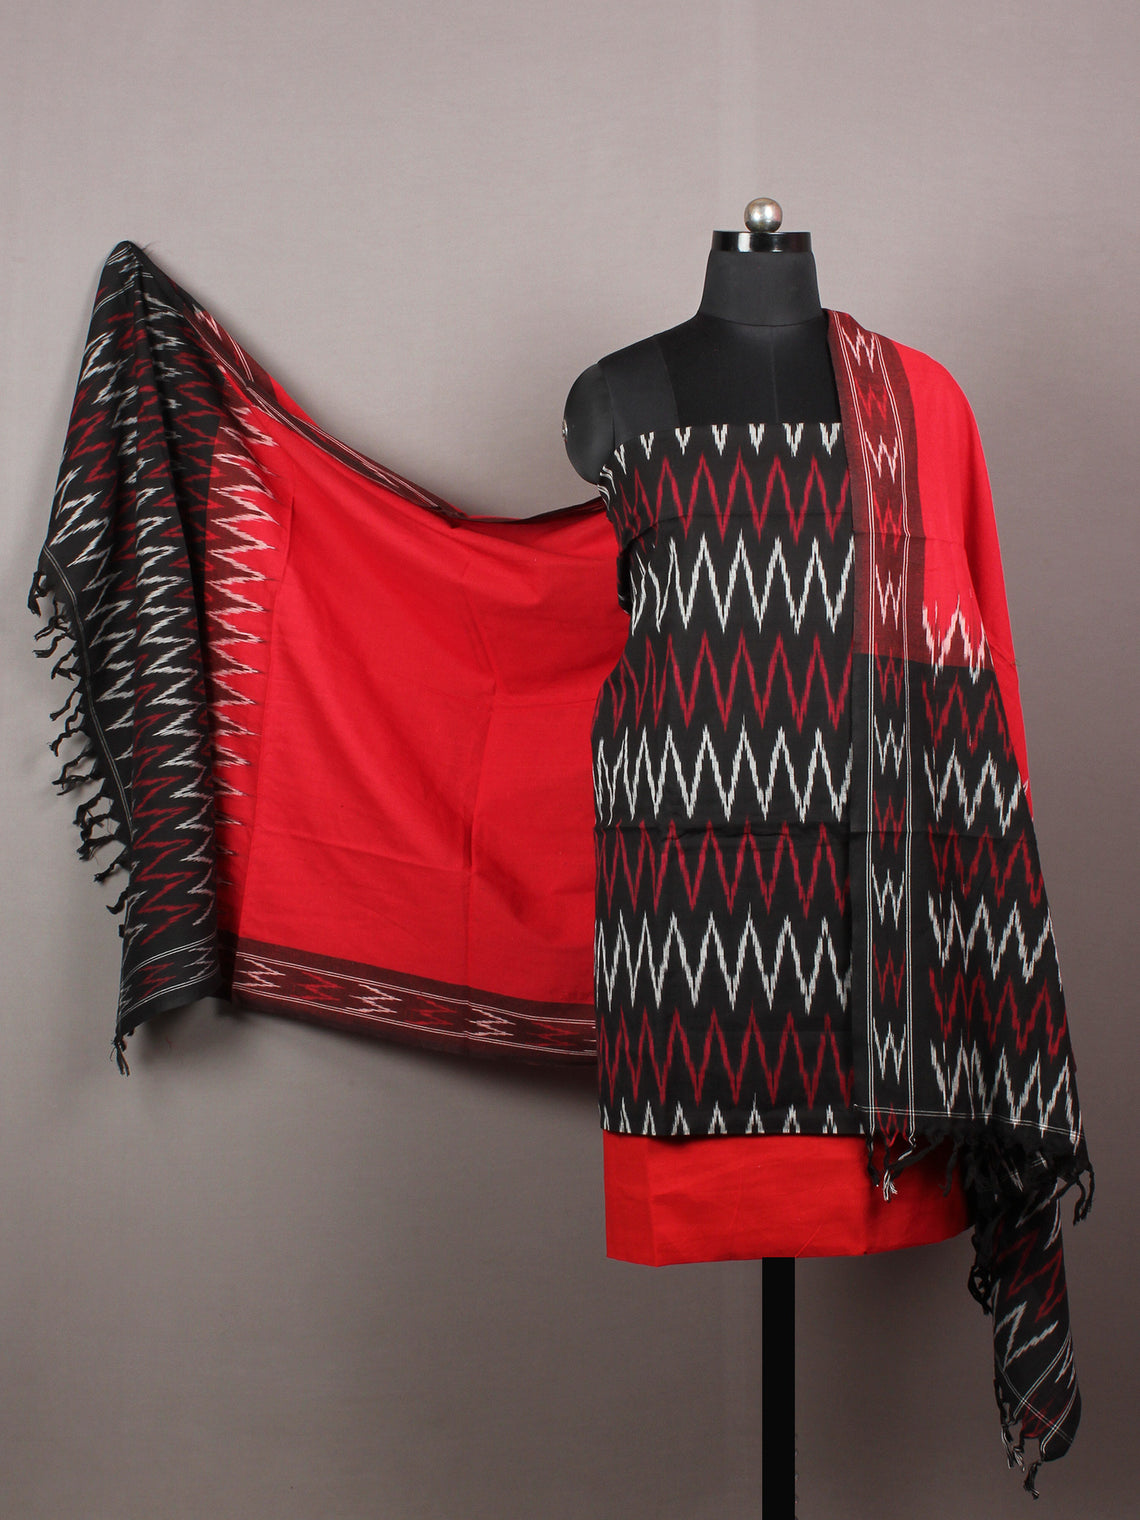 Red Black White Ikat Handwoven Cotton Suit Fabric Set of 3 - S1002030